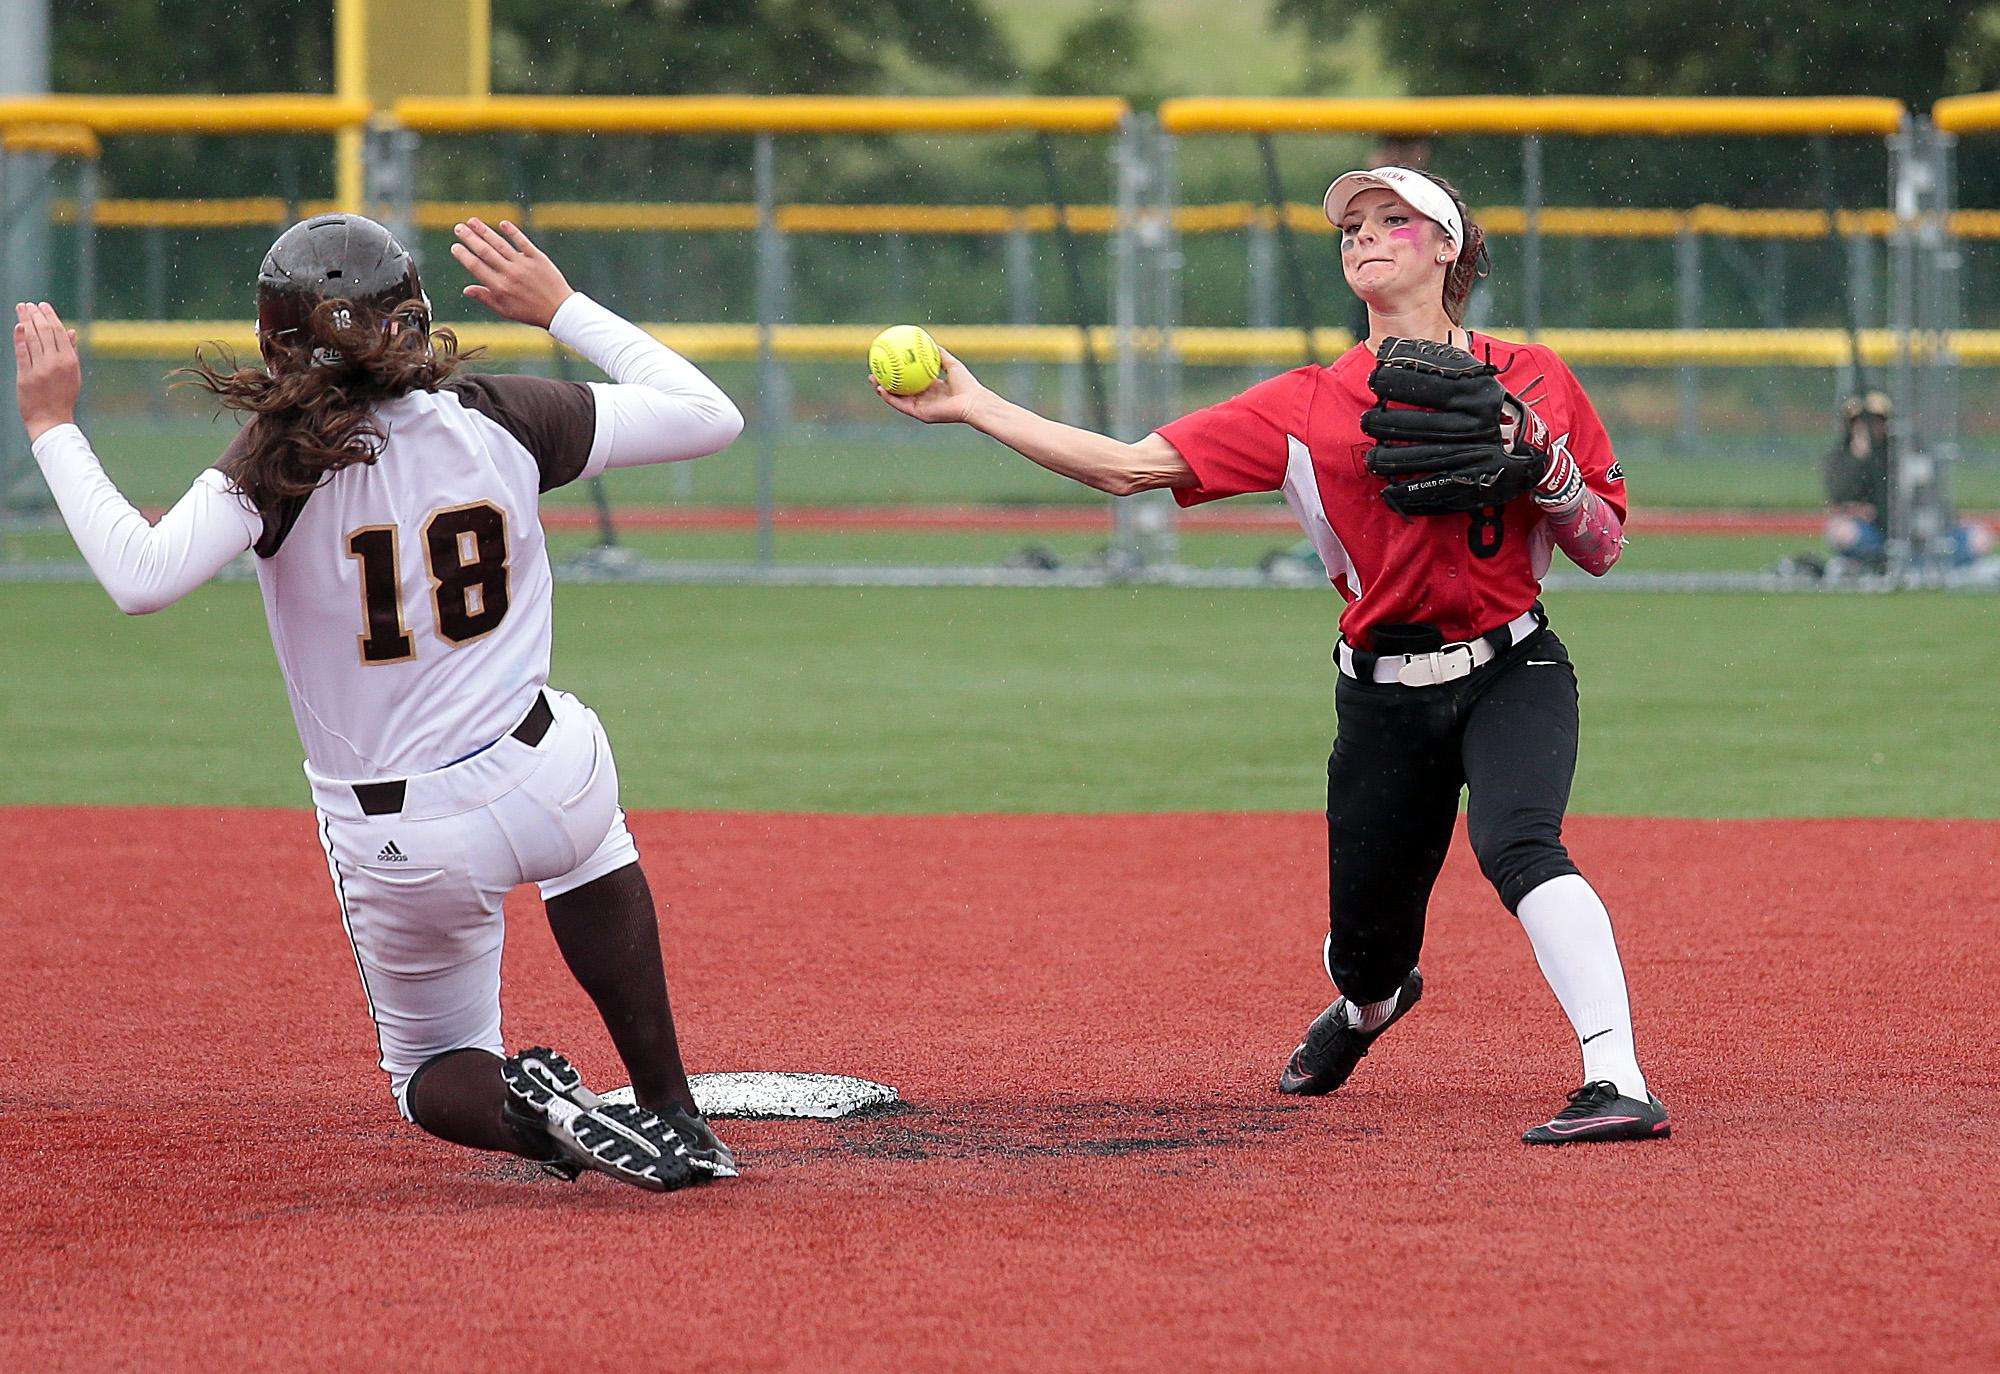 Larry Stauth Jr / for the Mail Tribune Southern Oregon University senior shortstop Kelsey Randall attempts to turn a double play over sliding base runner Hannah Santay of St. Francis on Wednesday at U.S. Cellular Community Park.